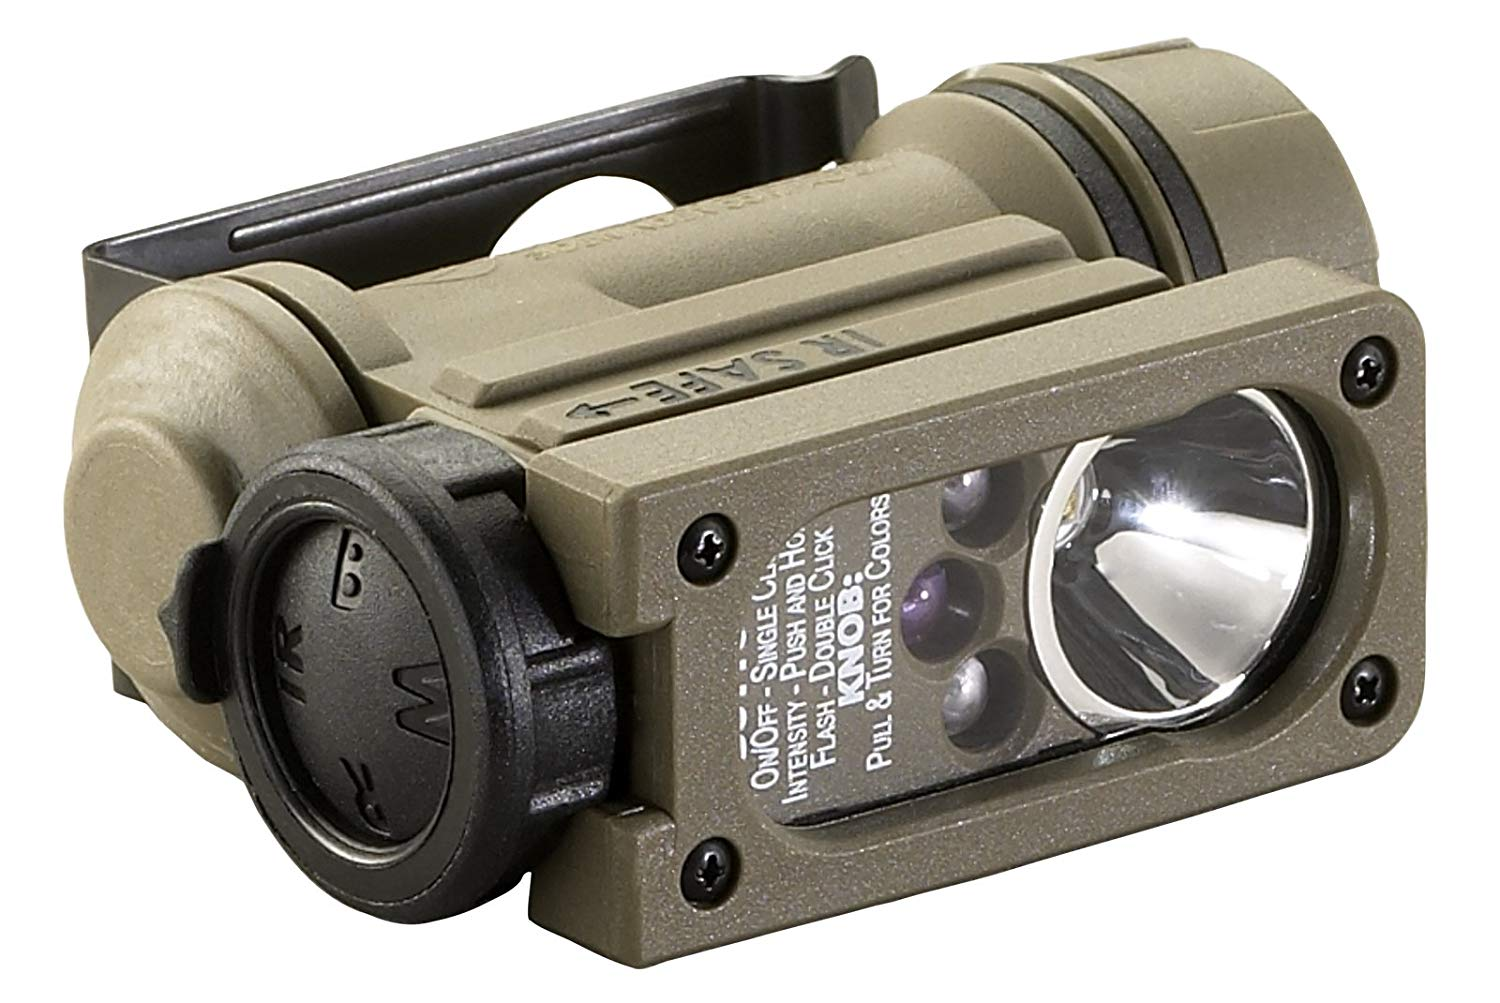 Streamlight 14514 Sidewinder Compact II Military Model Angle Head Flashlight